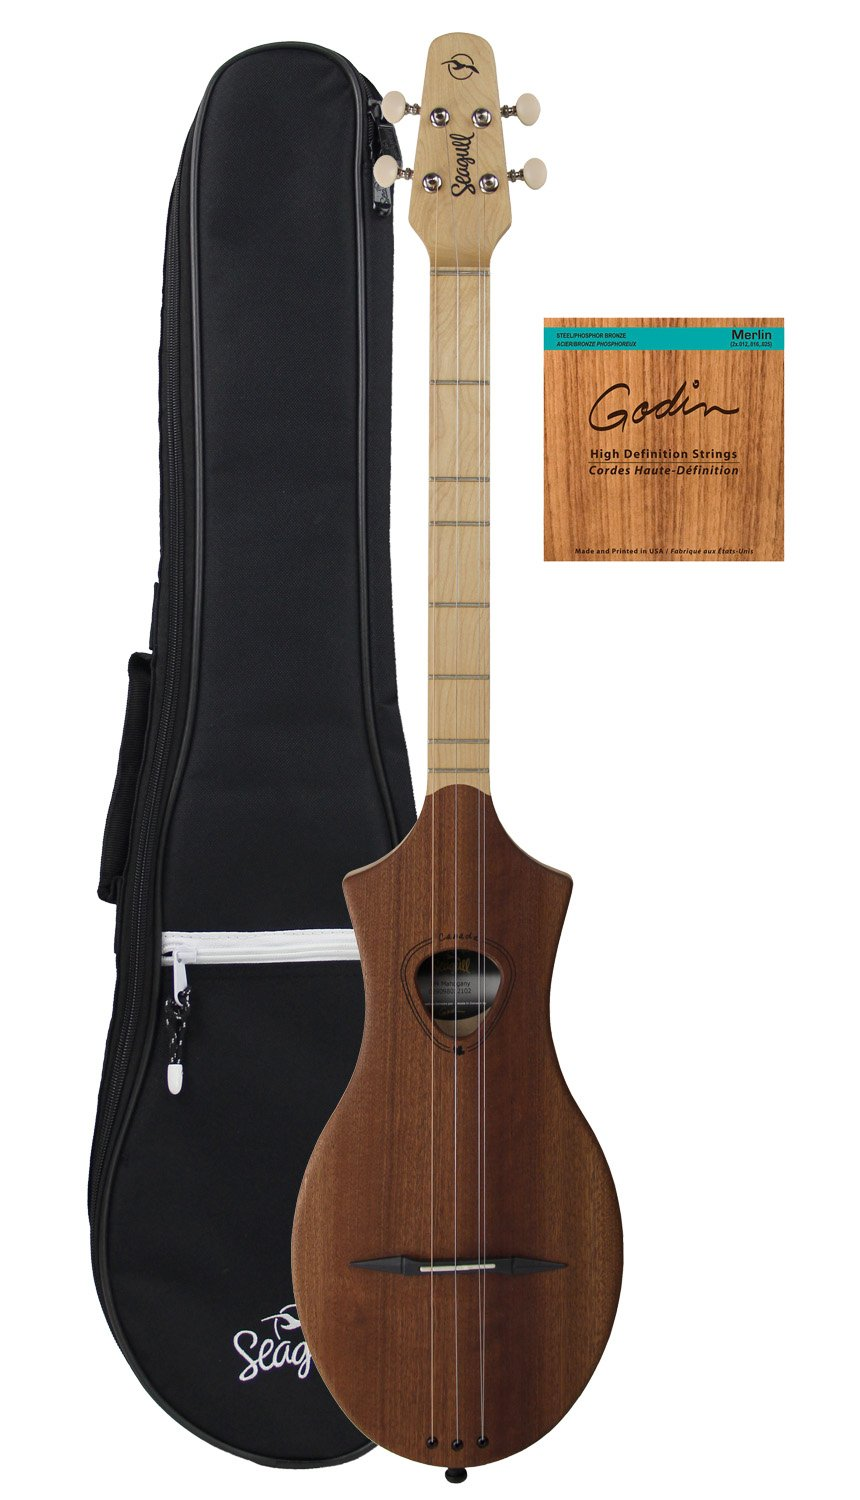 Seagull Merlin SG Dulcimer Guitar Bundle with Seagull Gig Bag and Strings - Natural Mahogany